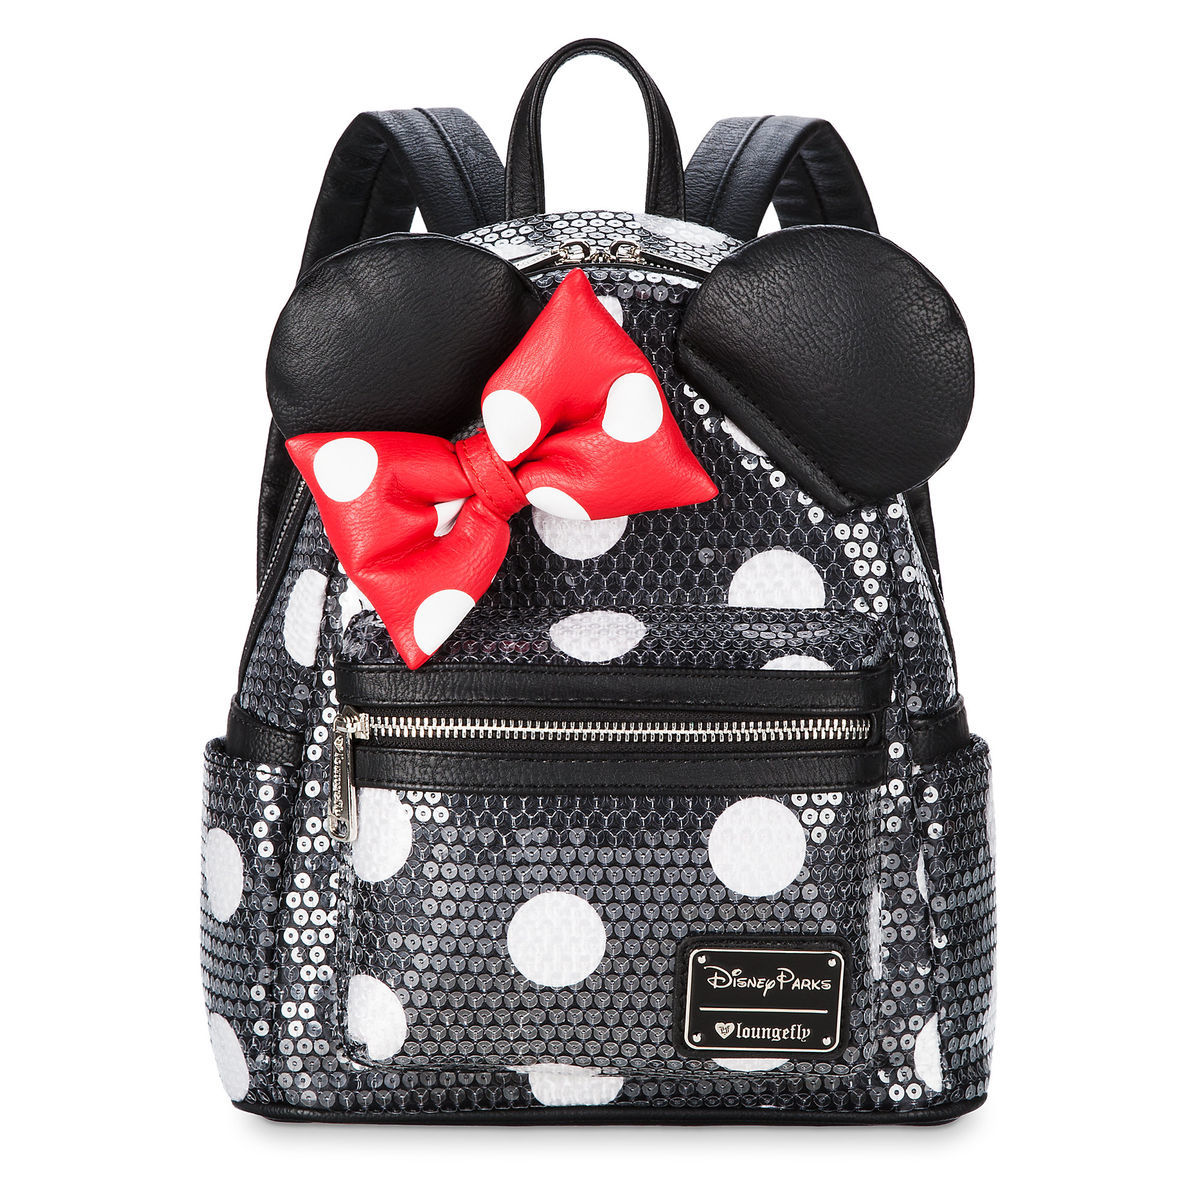 be02bce38e2 Add to My Lists. Disney Loungefly Backpack - Minnie Mouse ...